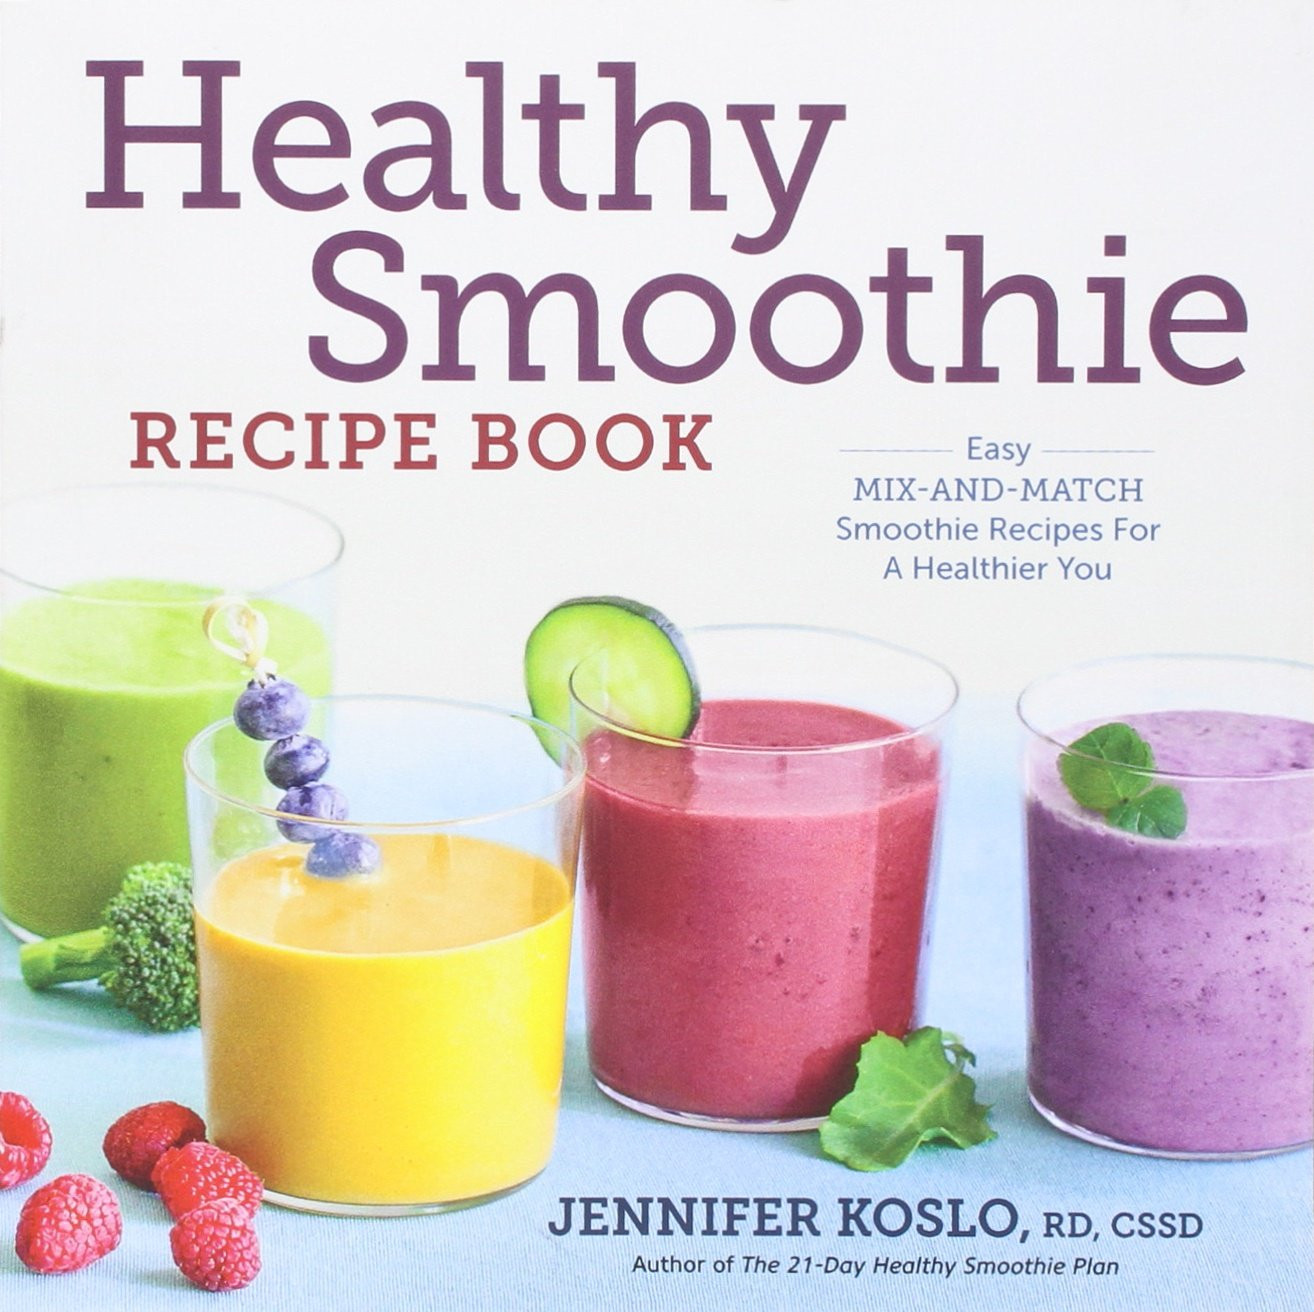 Healthy Easy Smoothie Recipes  Cheapest copy of Healthy Smoothie Recipe Book Easy Mix